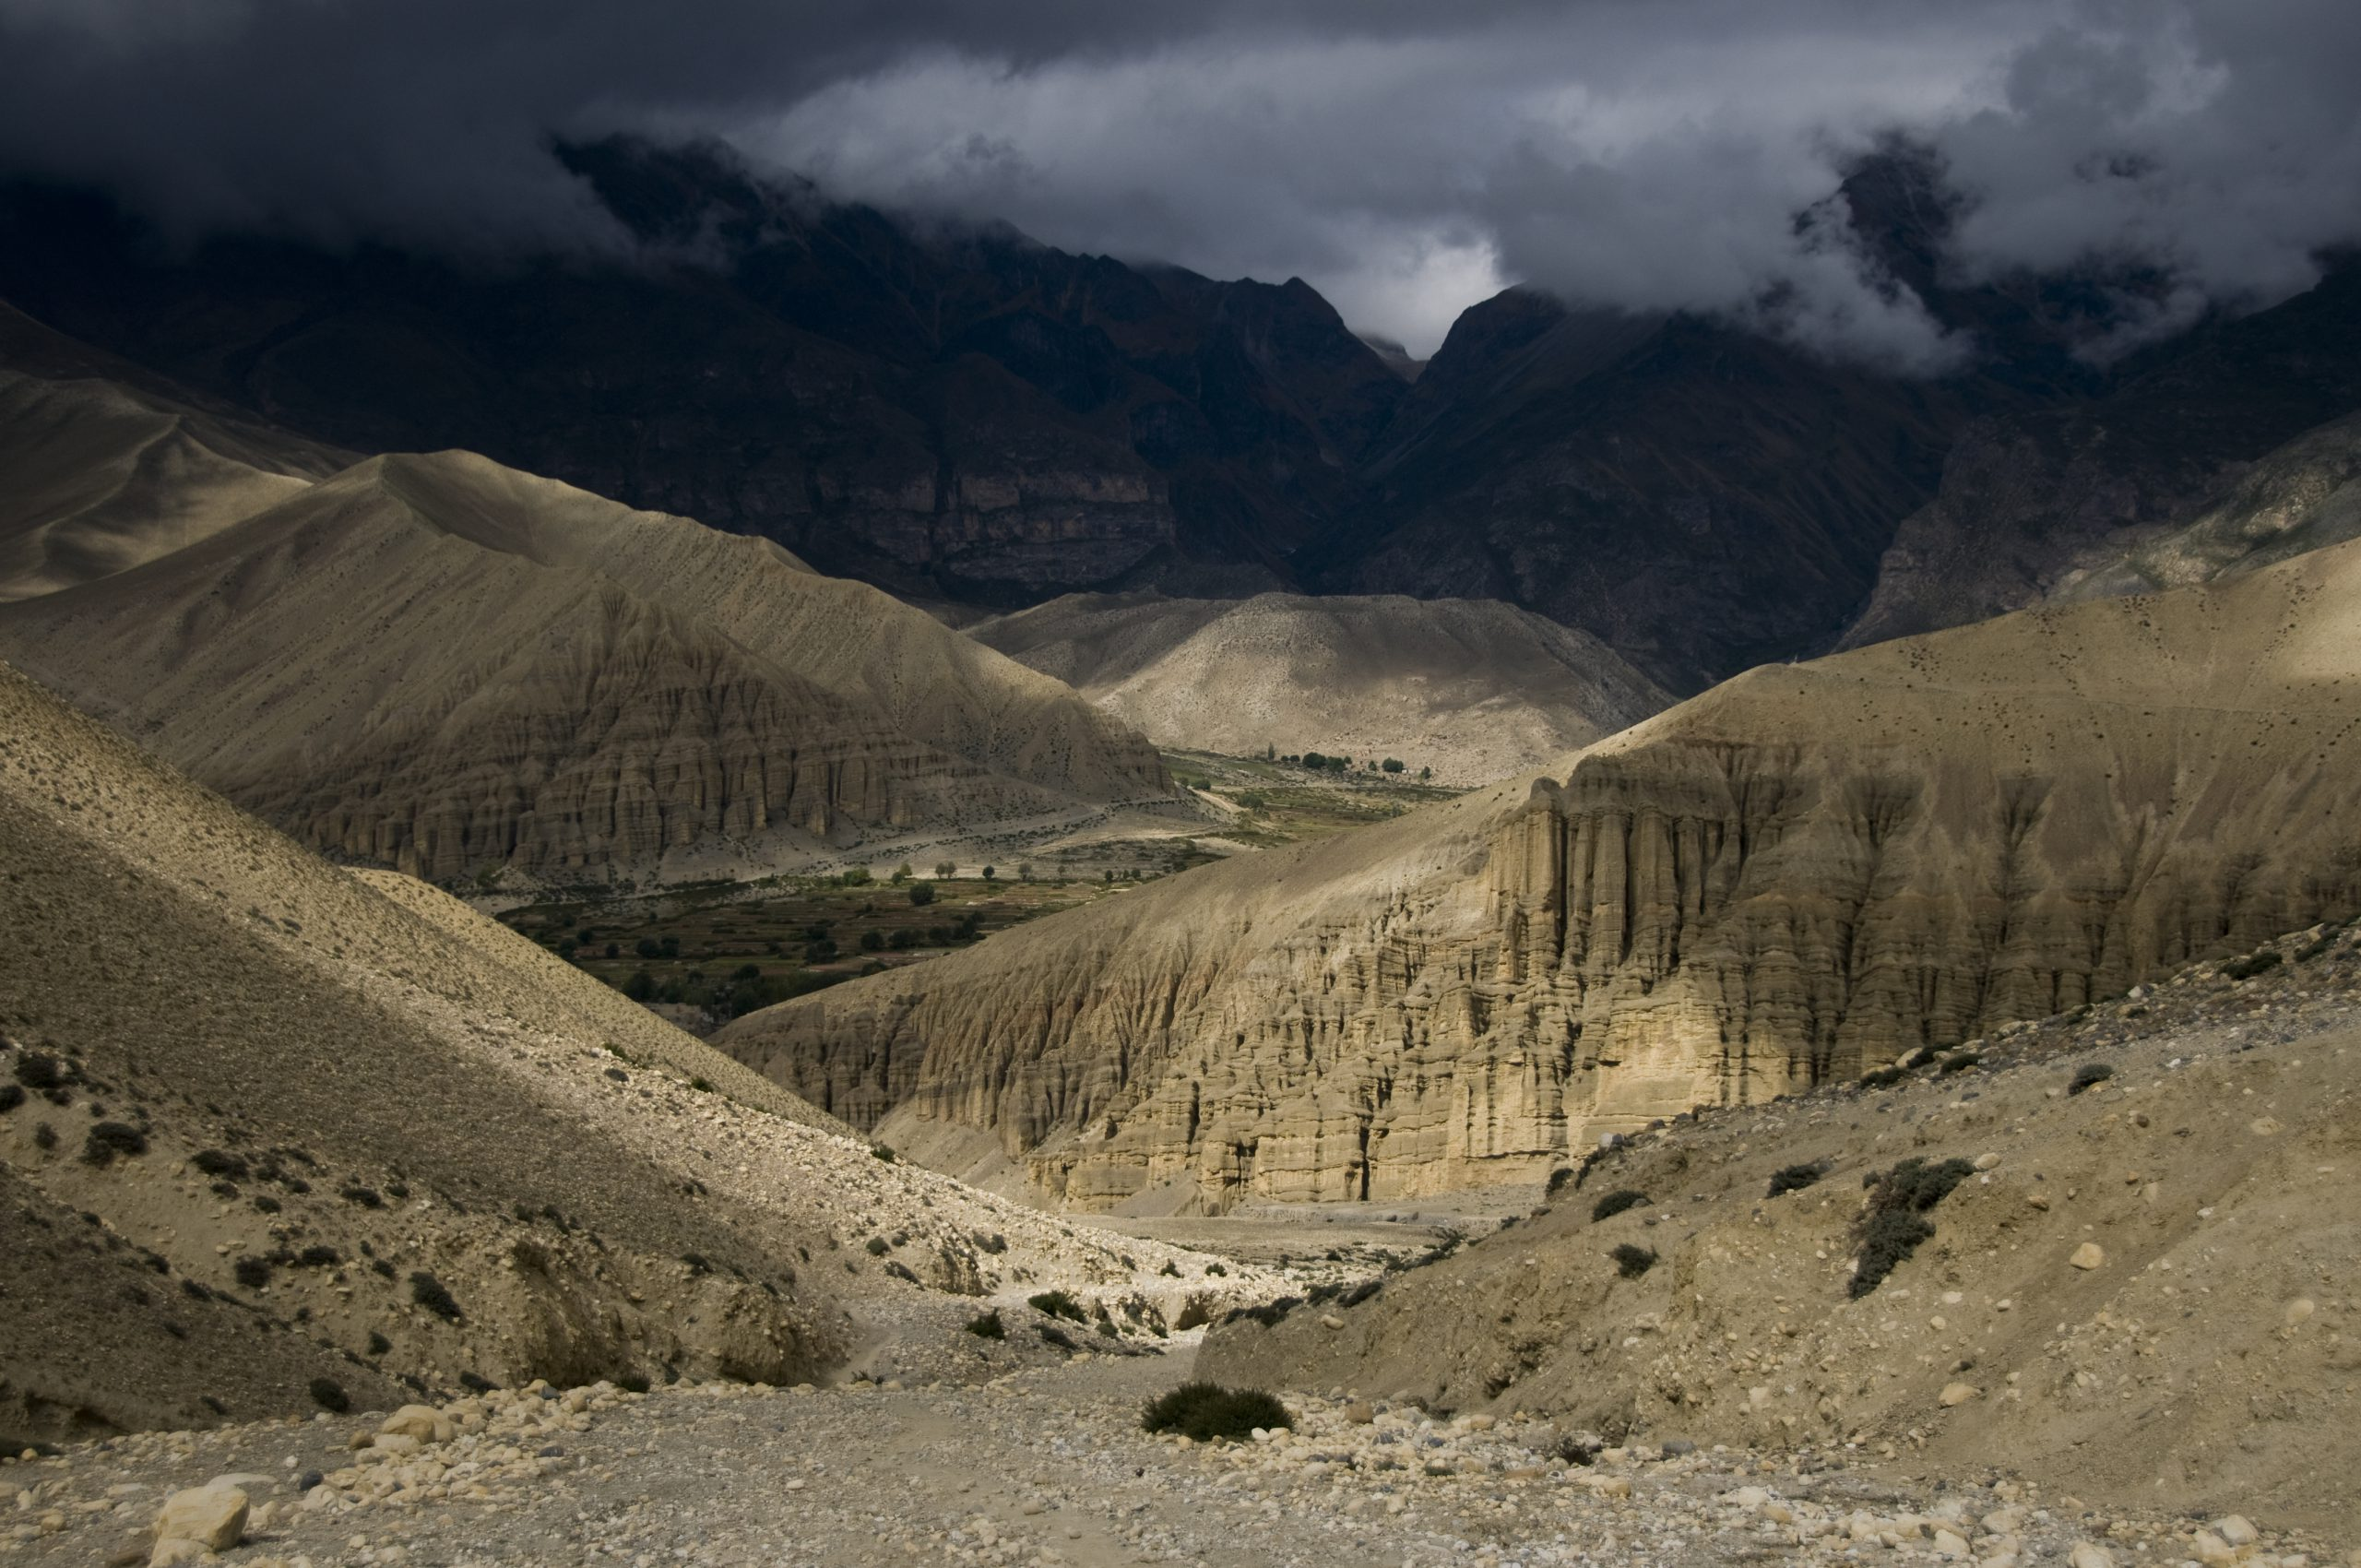 Kingdom of Mustang